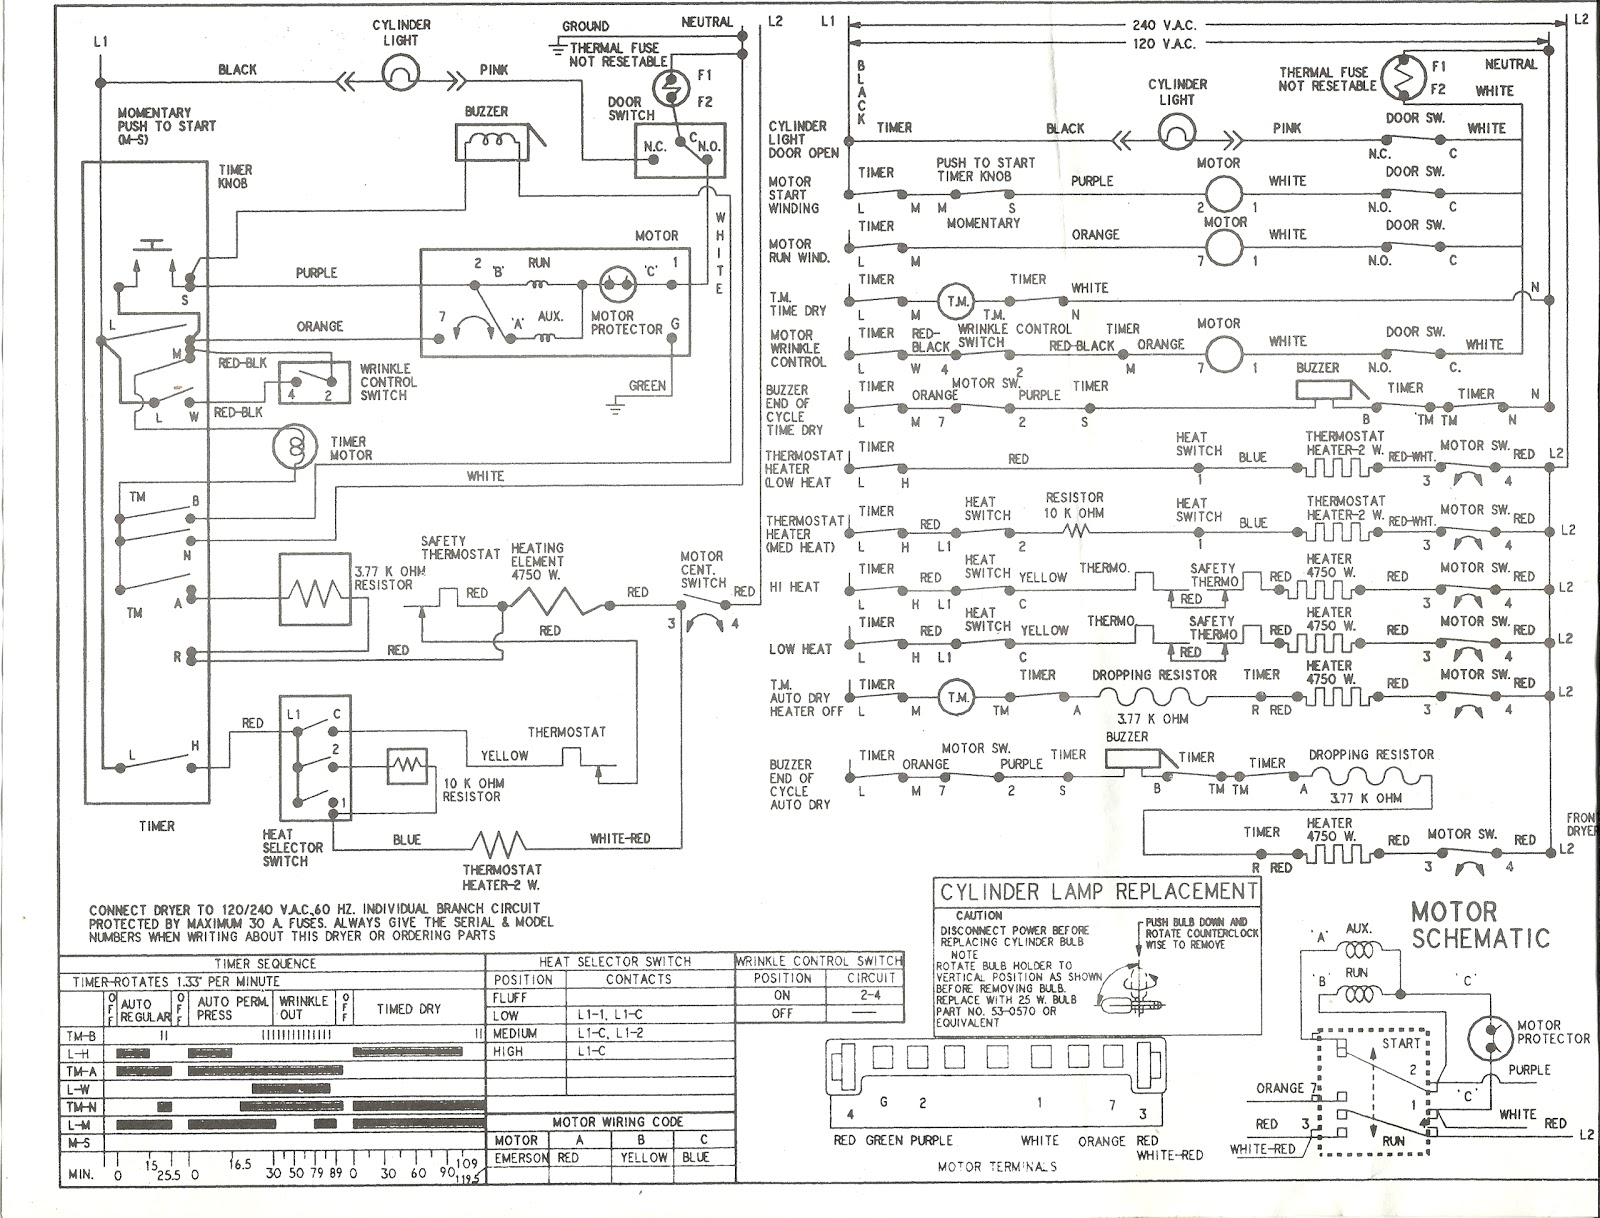 scan0001 dryer wiring diagram haier dryer wiring diagram \u2022 wiring diagrams duet wifi wiring diagram at virtualis.co